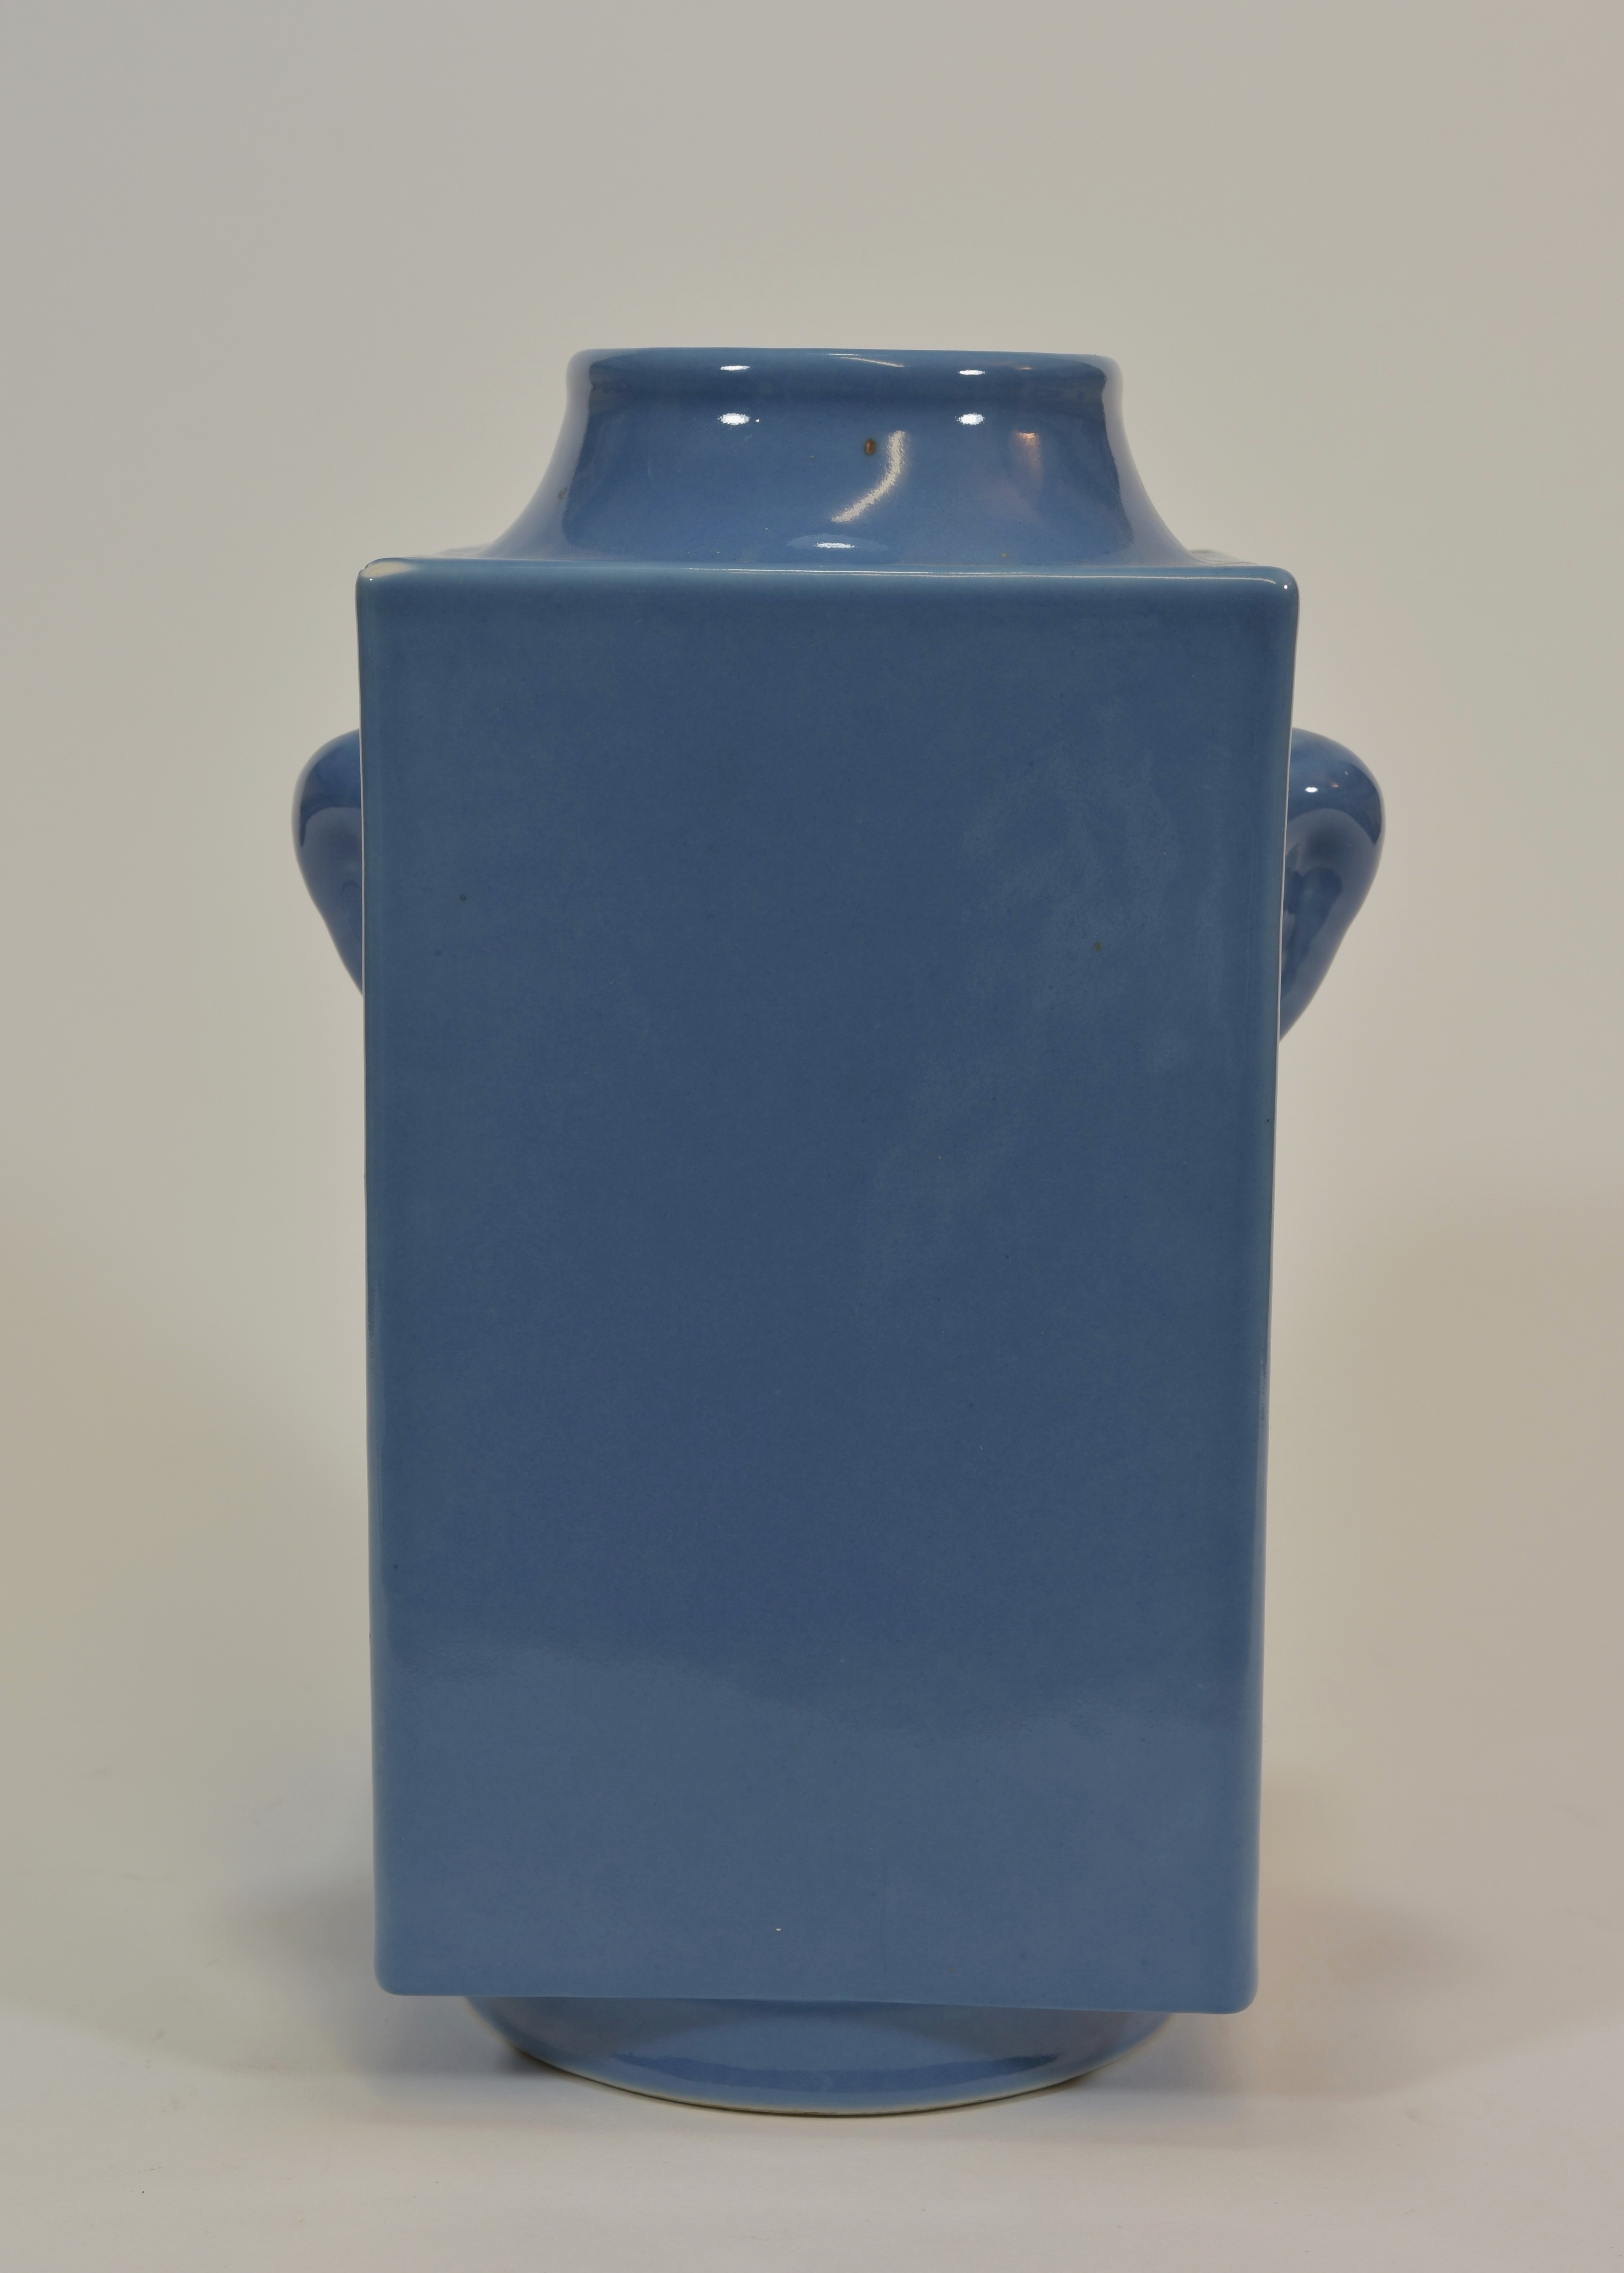 "Lot 6 - A late 19th centry blue glazed square vase Yongzheng mark 24cm tall清 十九世紀 淺藍釉獸耳琮瓶""大清雍正年制""款"